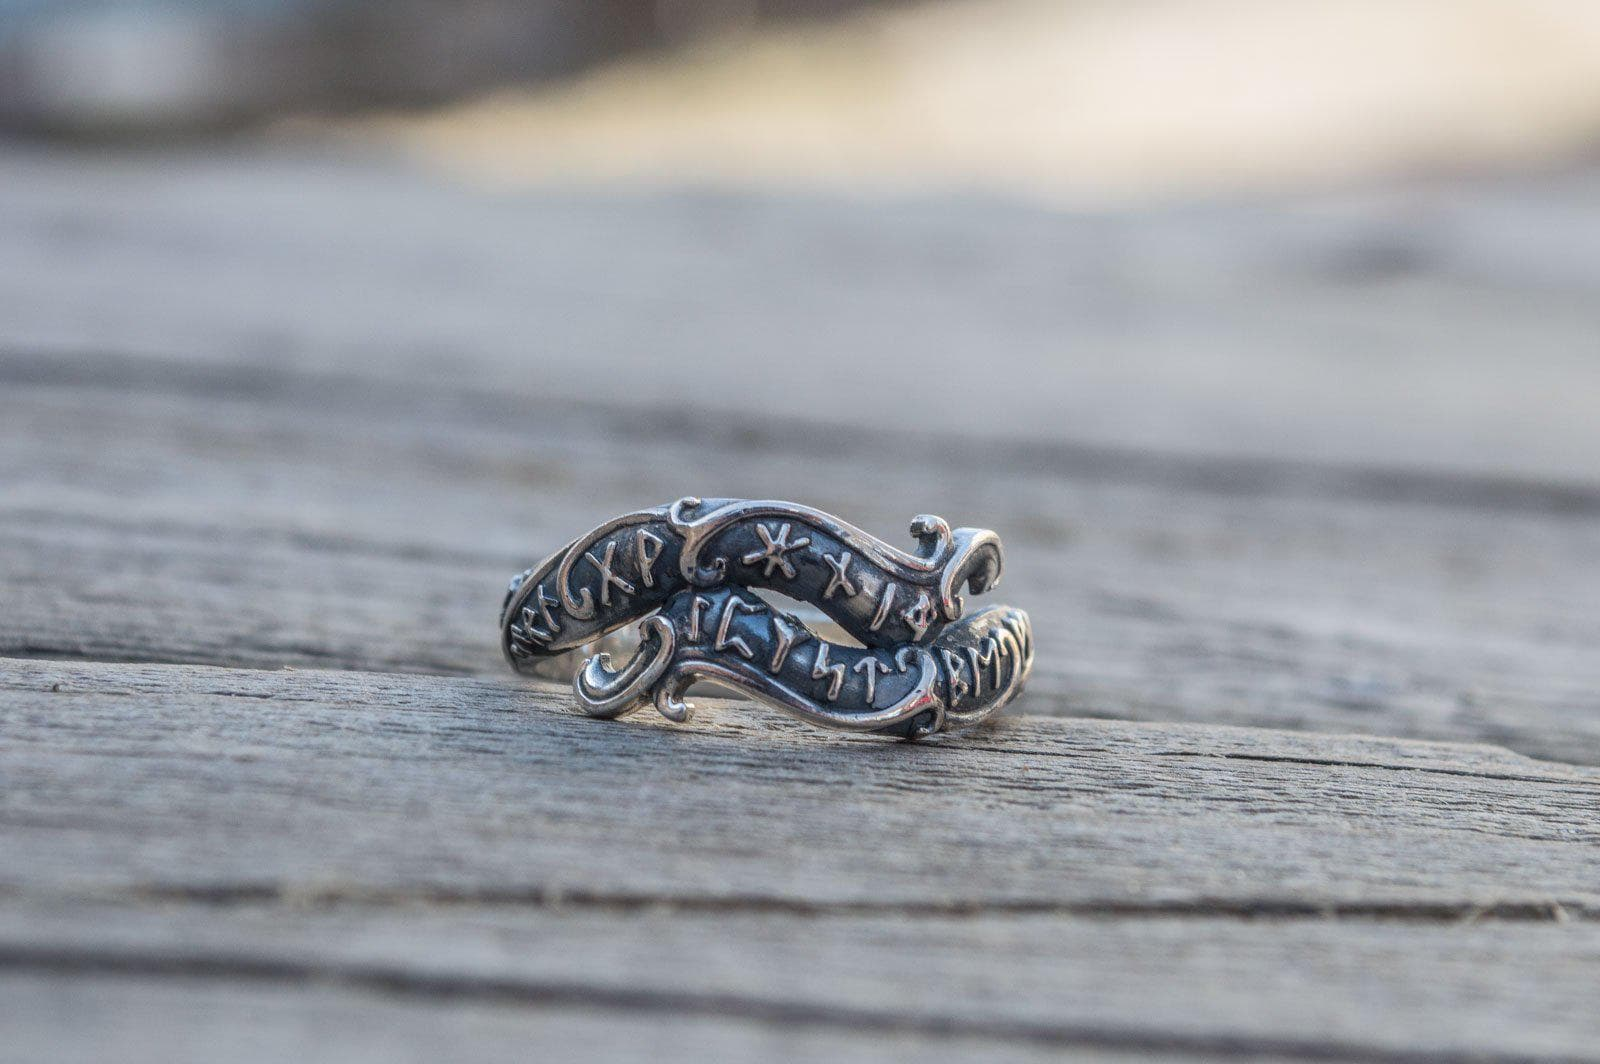 Vikings Ouroboros Ring with Runes Sterling Silver Handmade Ring